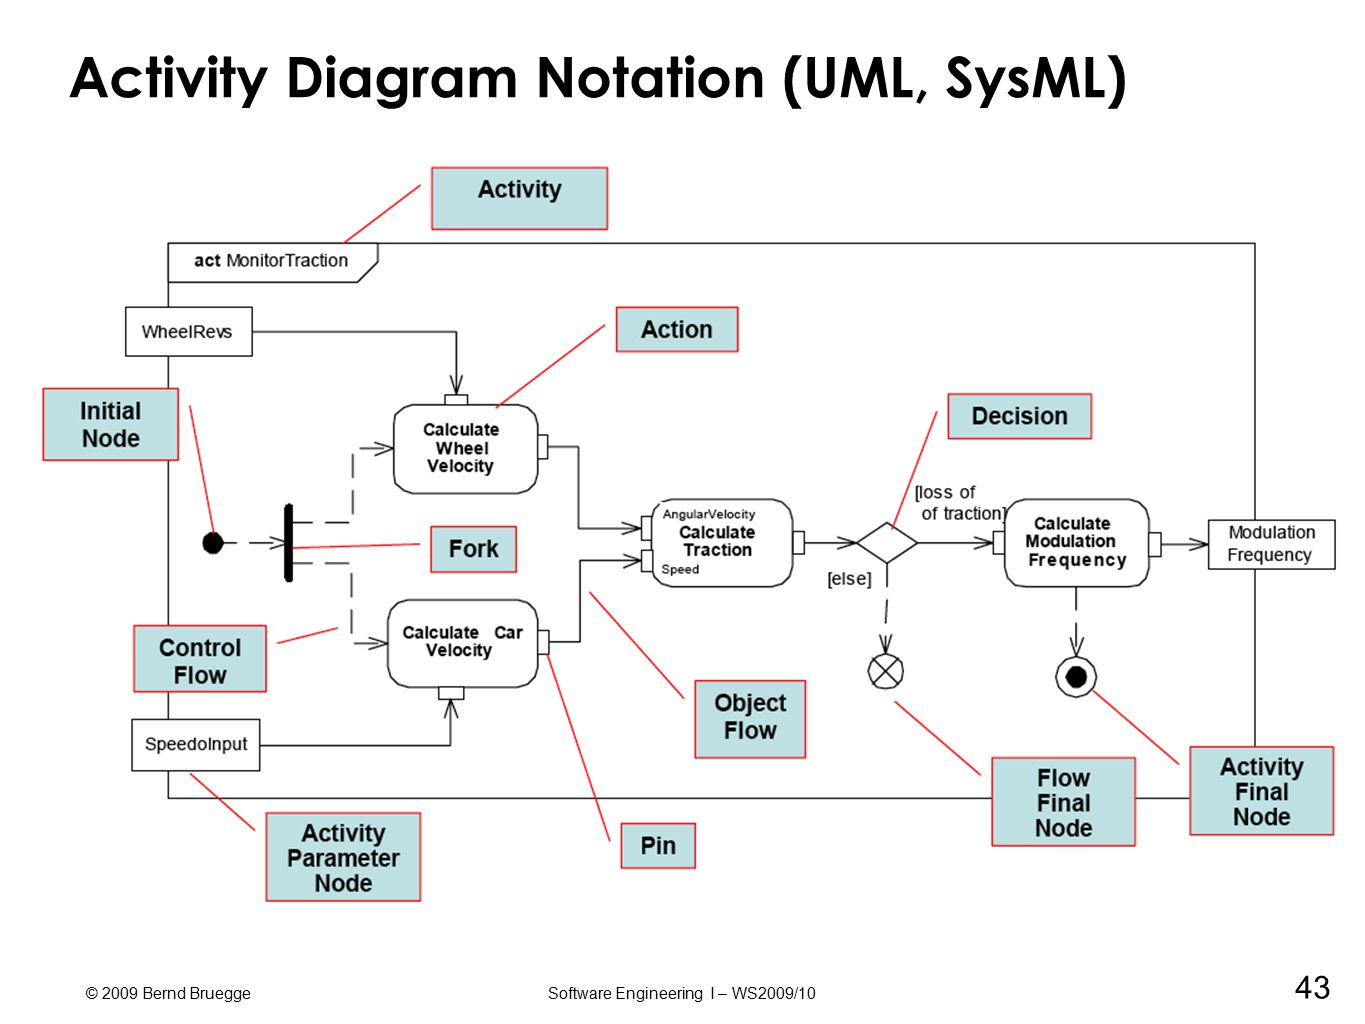 Sysml a modeling language for systems of systems ppt download 43 activity diagram notation uml sysml ccuart Image collections